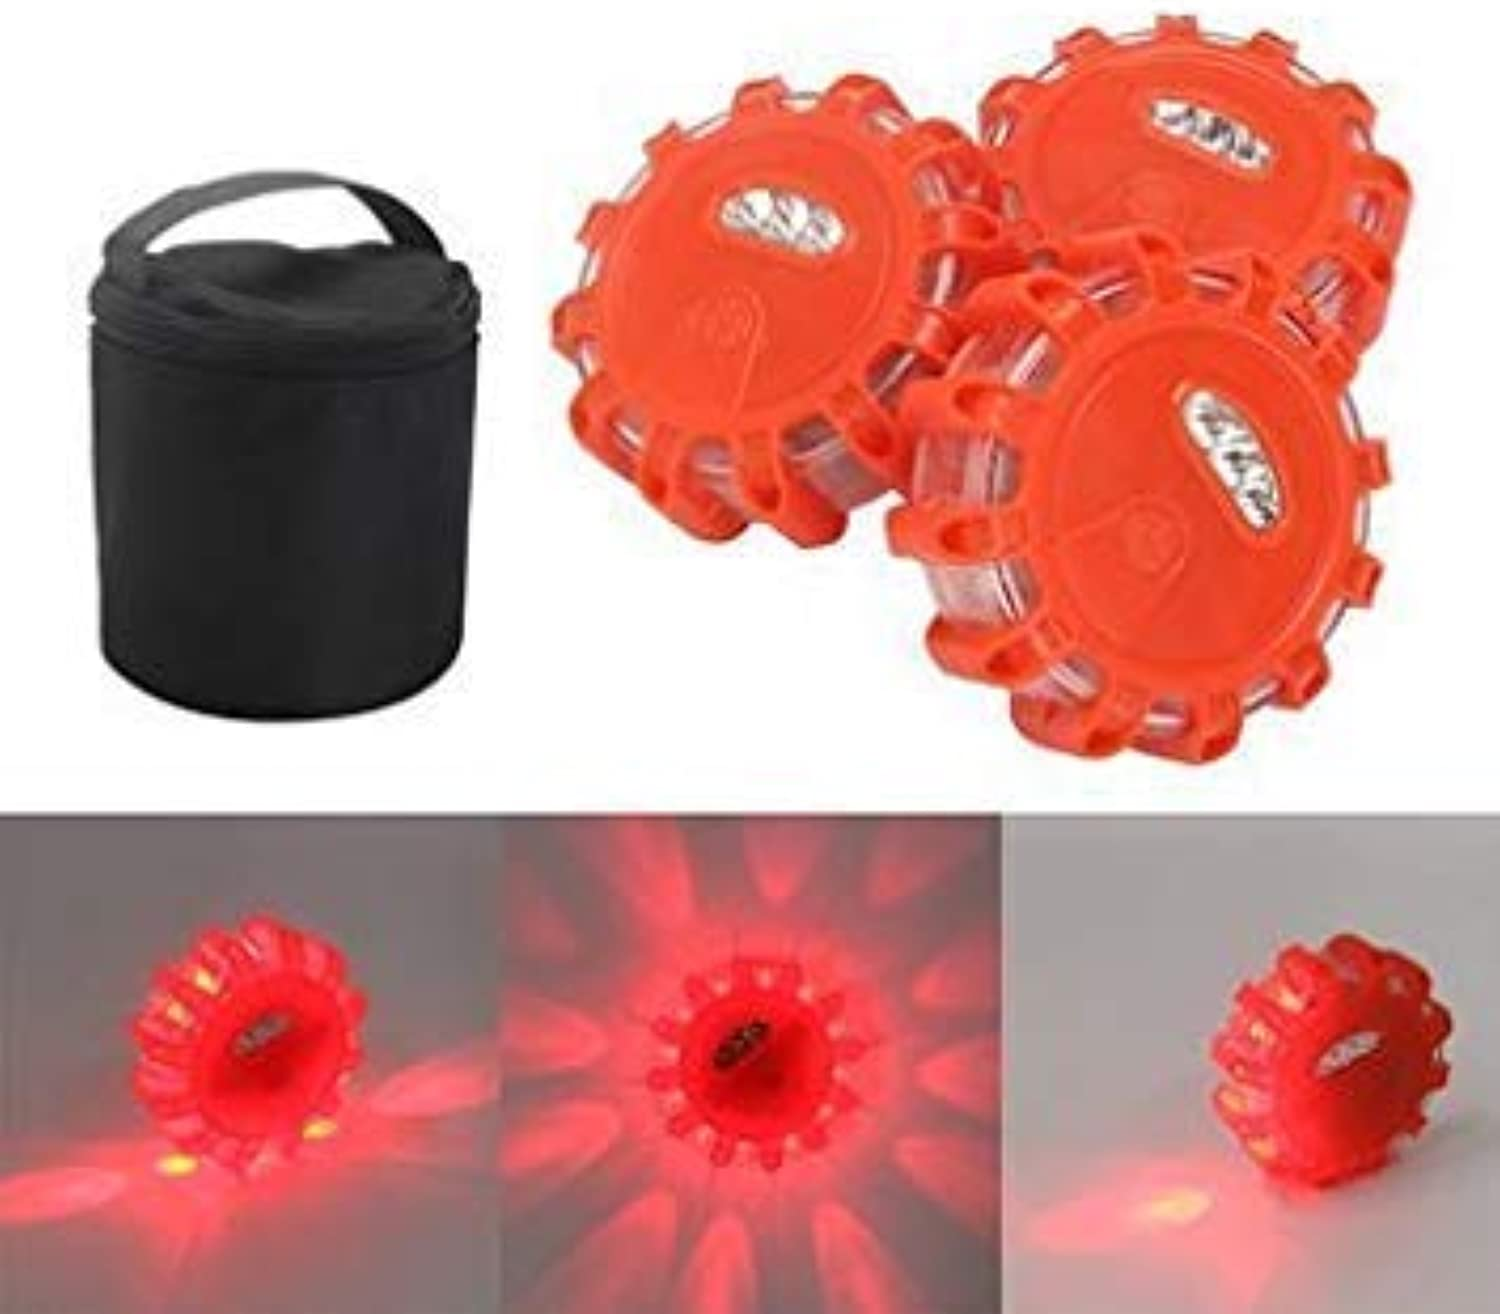 3 Pcs Outdoor Led Road Flares Flashing Warning Lights Roadside Safety Sos Lamp Safety Indicator